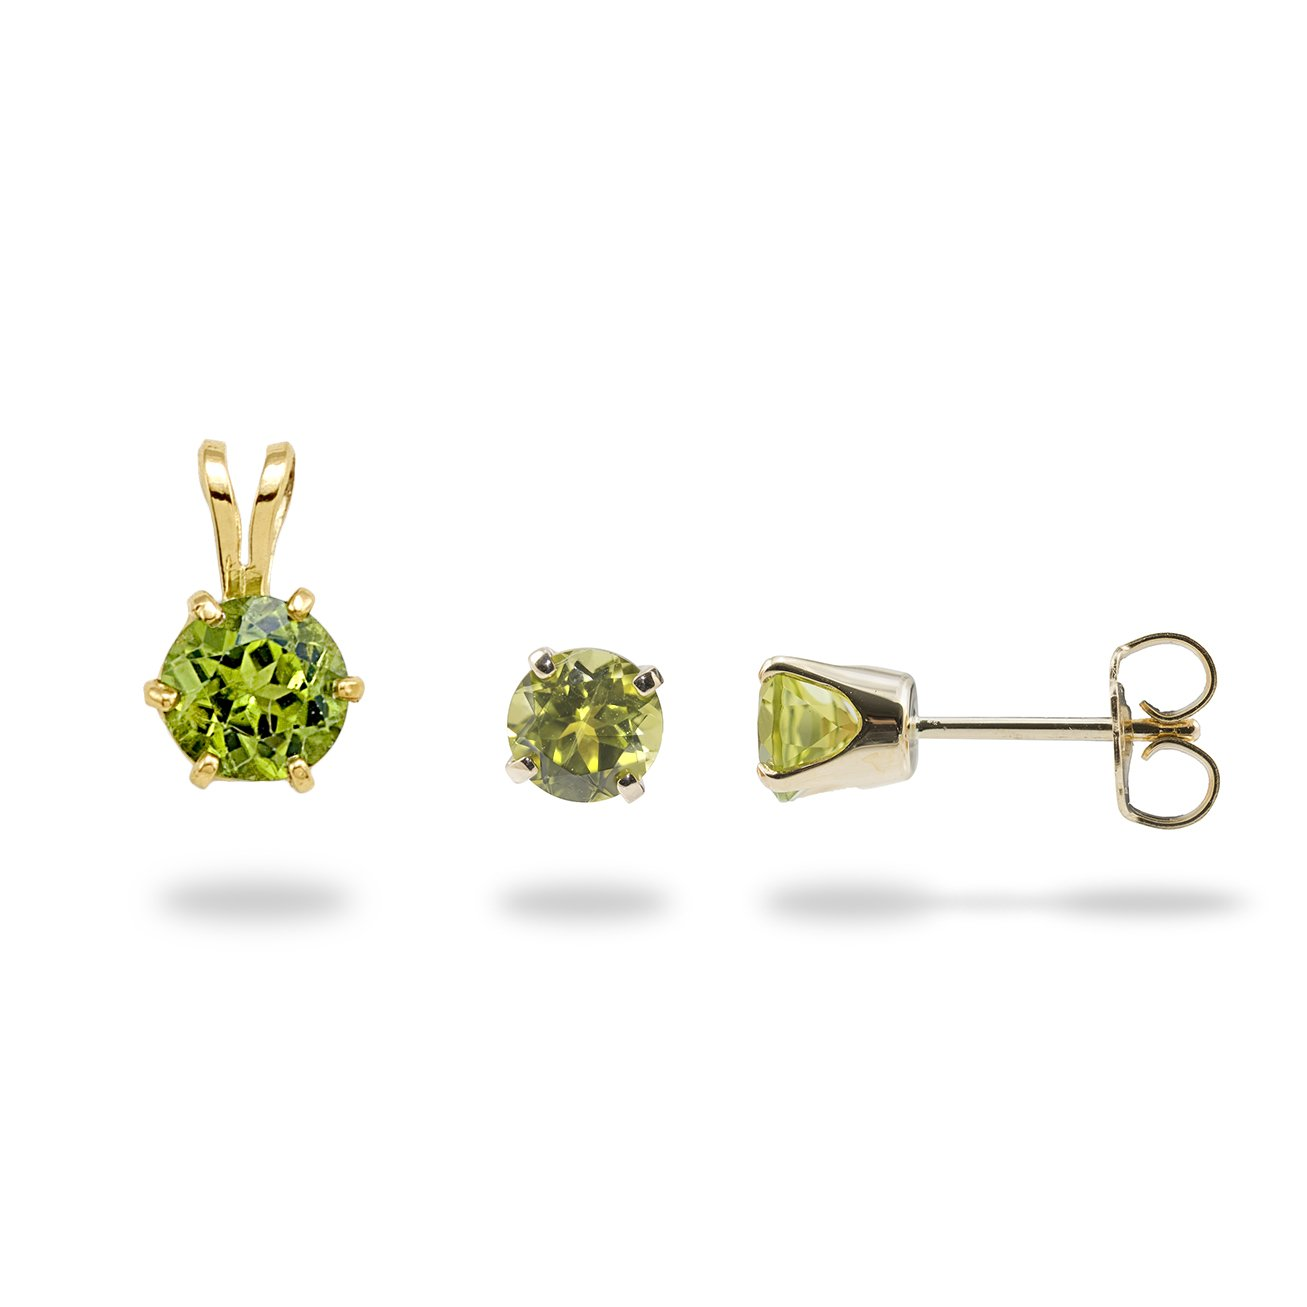 b029642ea Peridot Pendant and Earrings in 14K Yellow Gold Set | Products